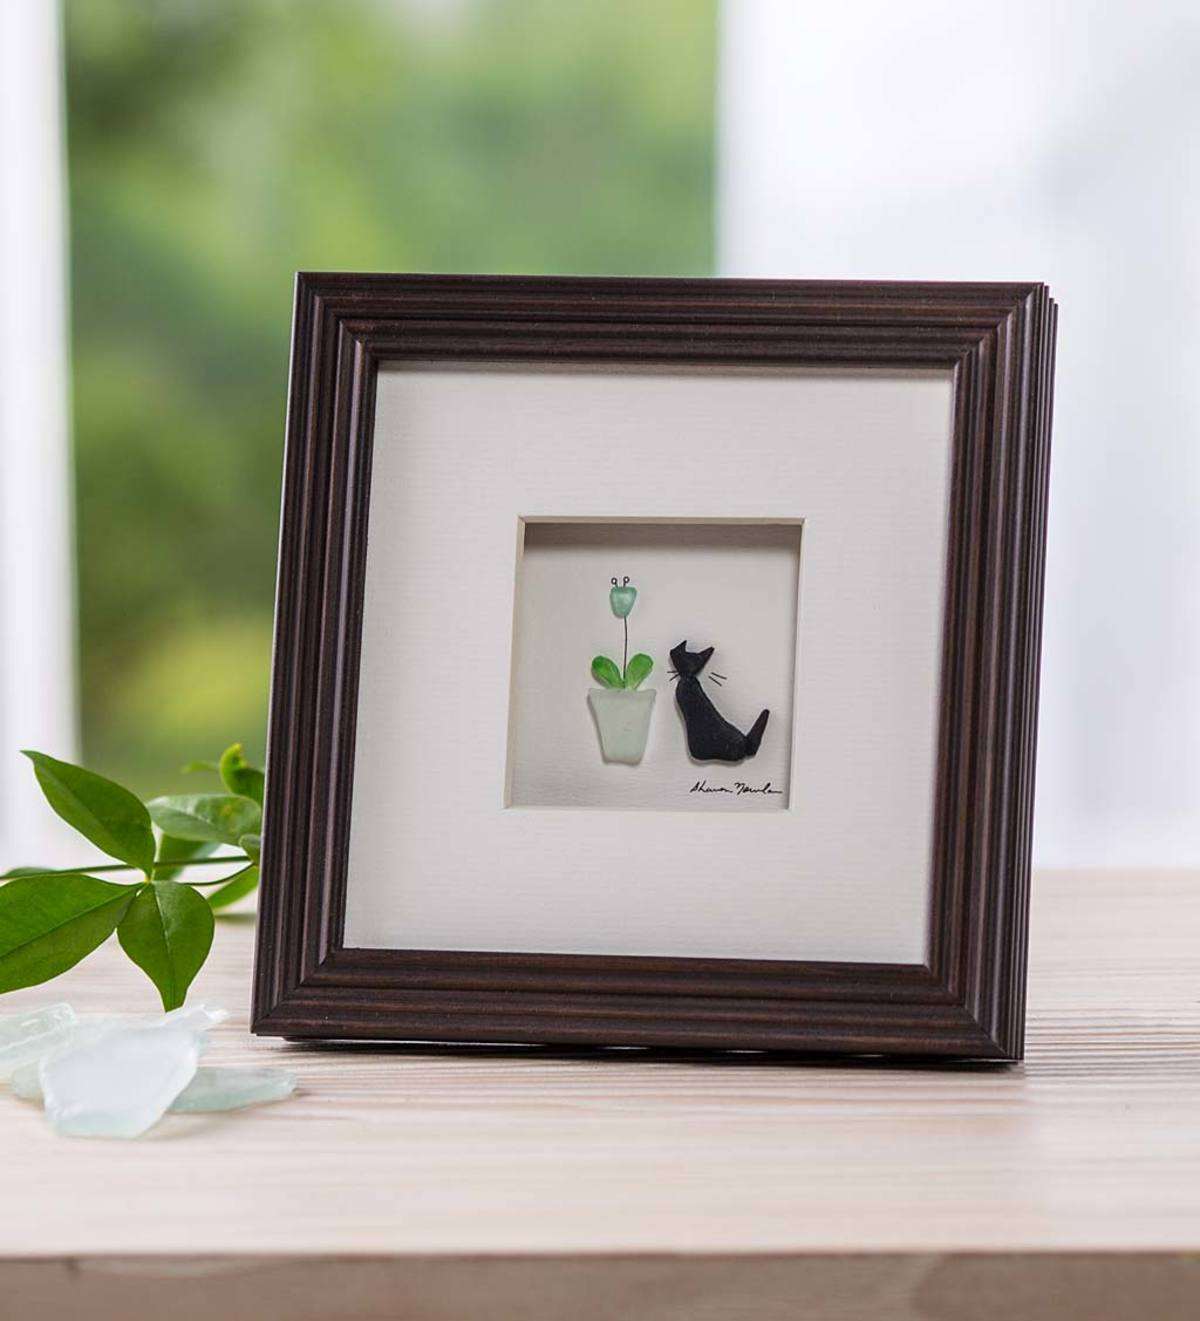 Purrfect Petals Framed Wall Art